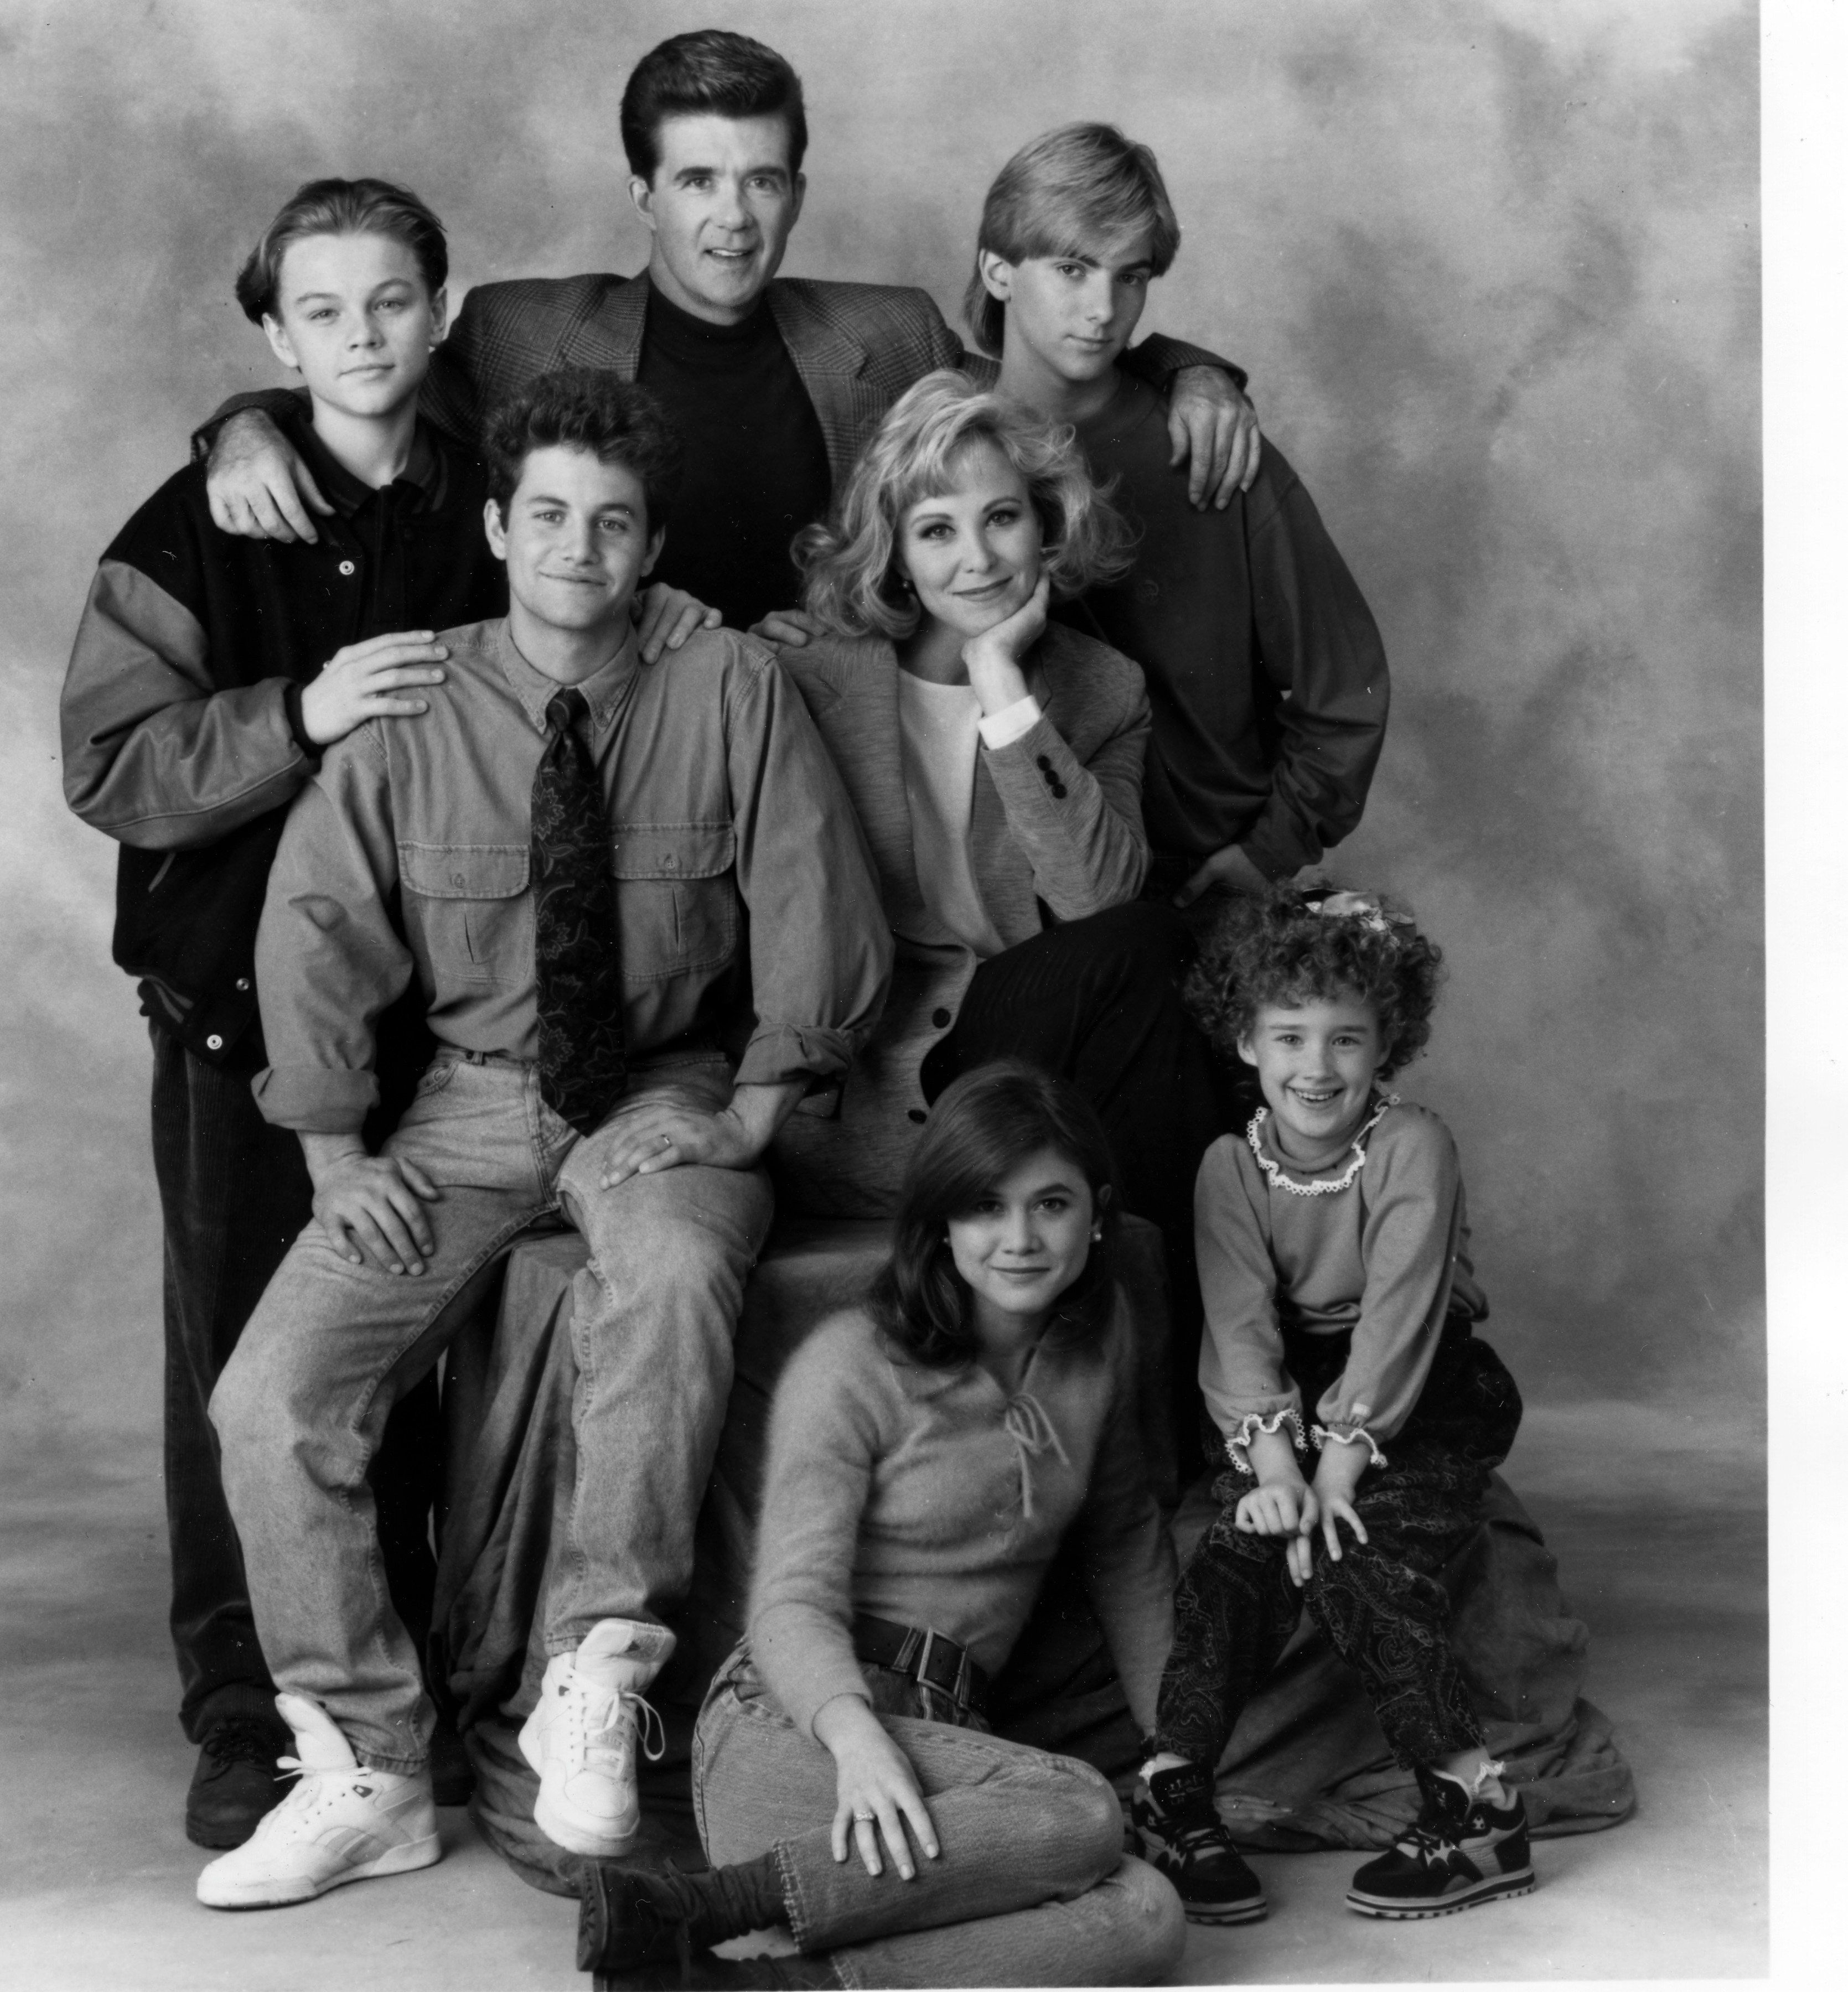 GROWING PAINS - Gallery - Shoot Date: September 28, 1991. (Photo by ABC Photo Archives/ABC via Getty Images) LEONARDO DICAPRIO;KIRK CAMERON;ALAN THICKE;JOANNA KERNS;TRACEY GOLD;JEREMY MILLER;ASHLEY JOHNSON